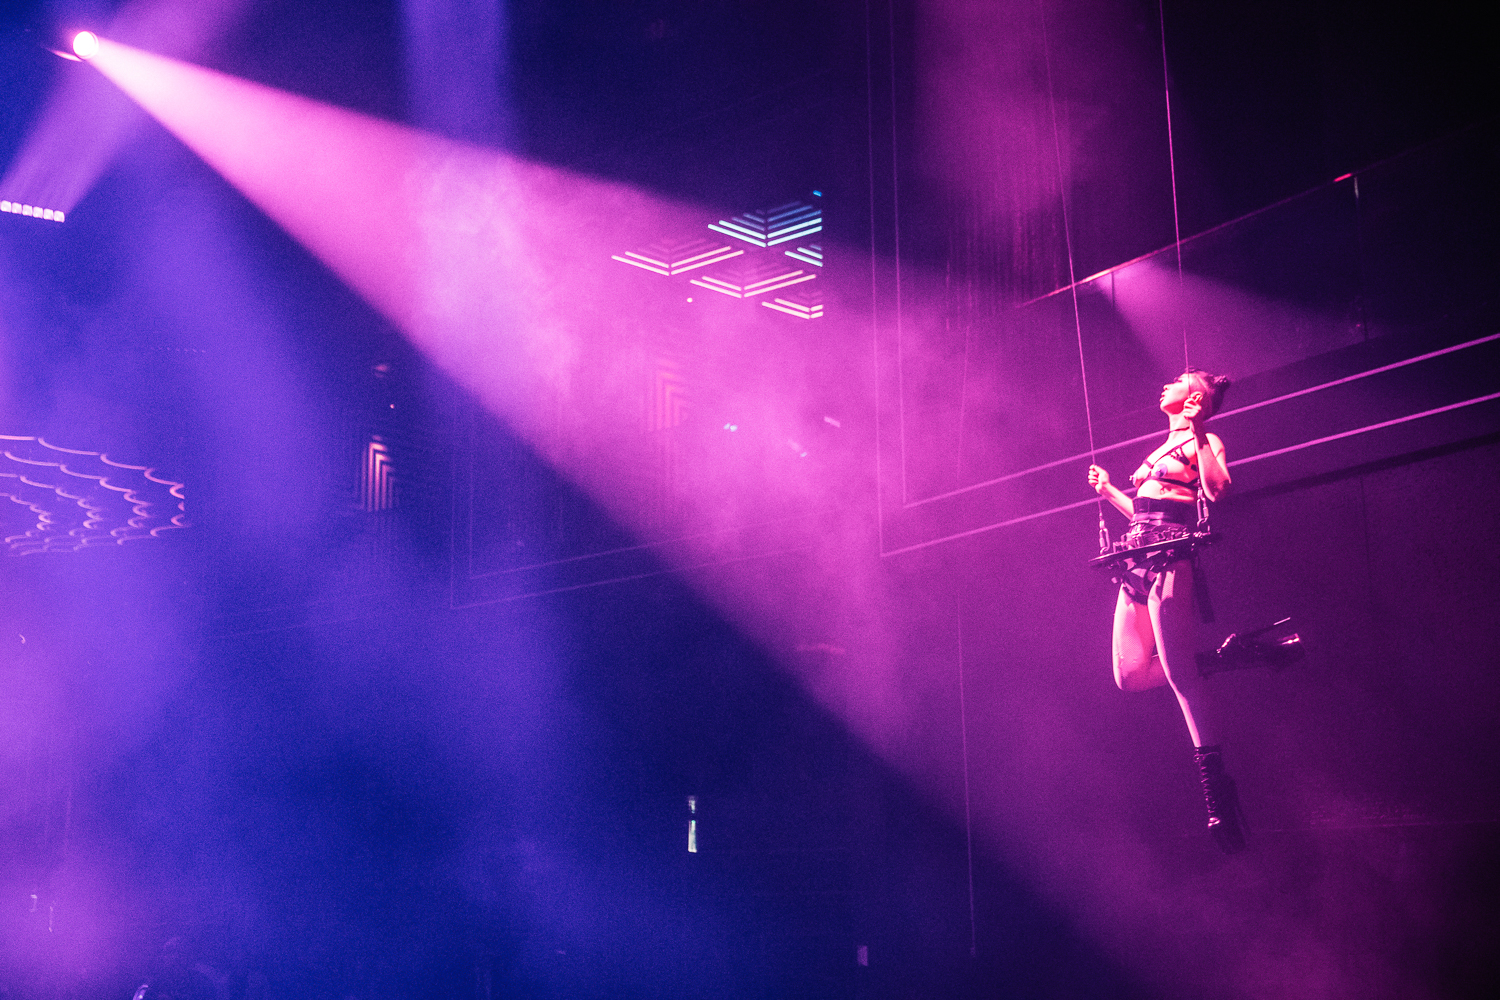 CLUB CHROMA at PARADISE CITY - In an aerial harness performance to accompany world renowned DJ, Oliver Heldens